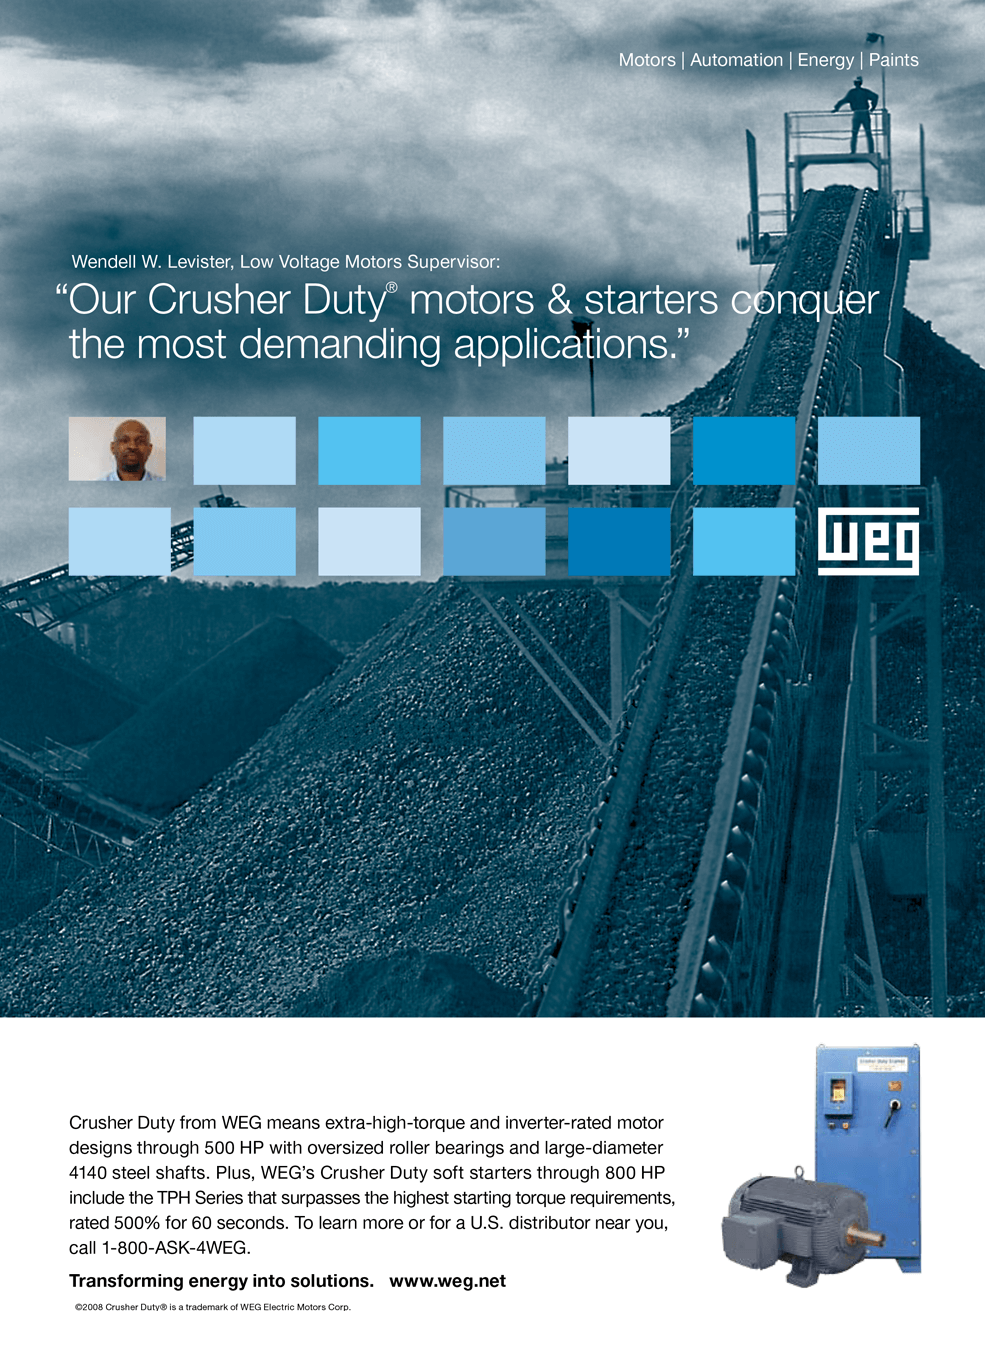 WEG Print Ad - Our Crusher Duty